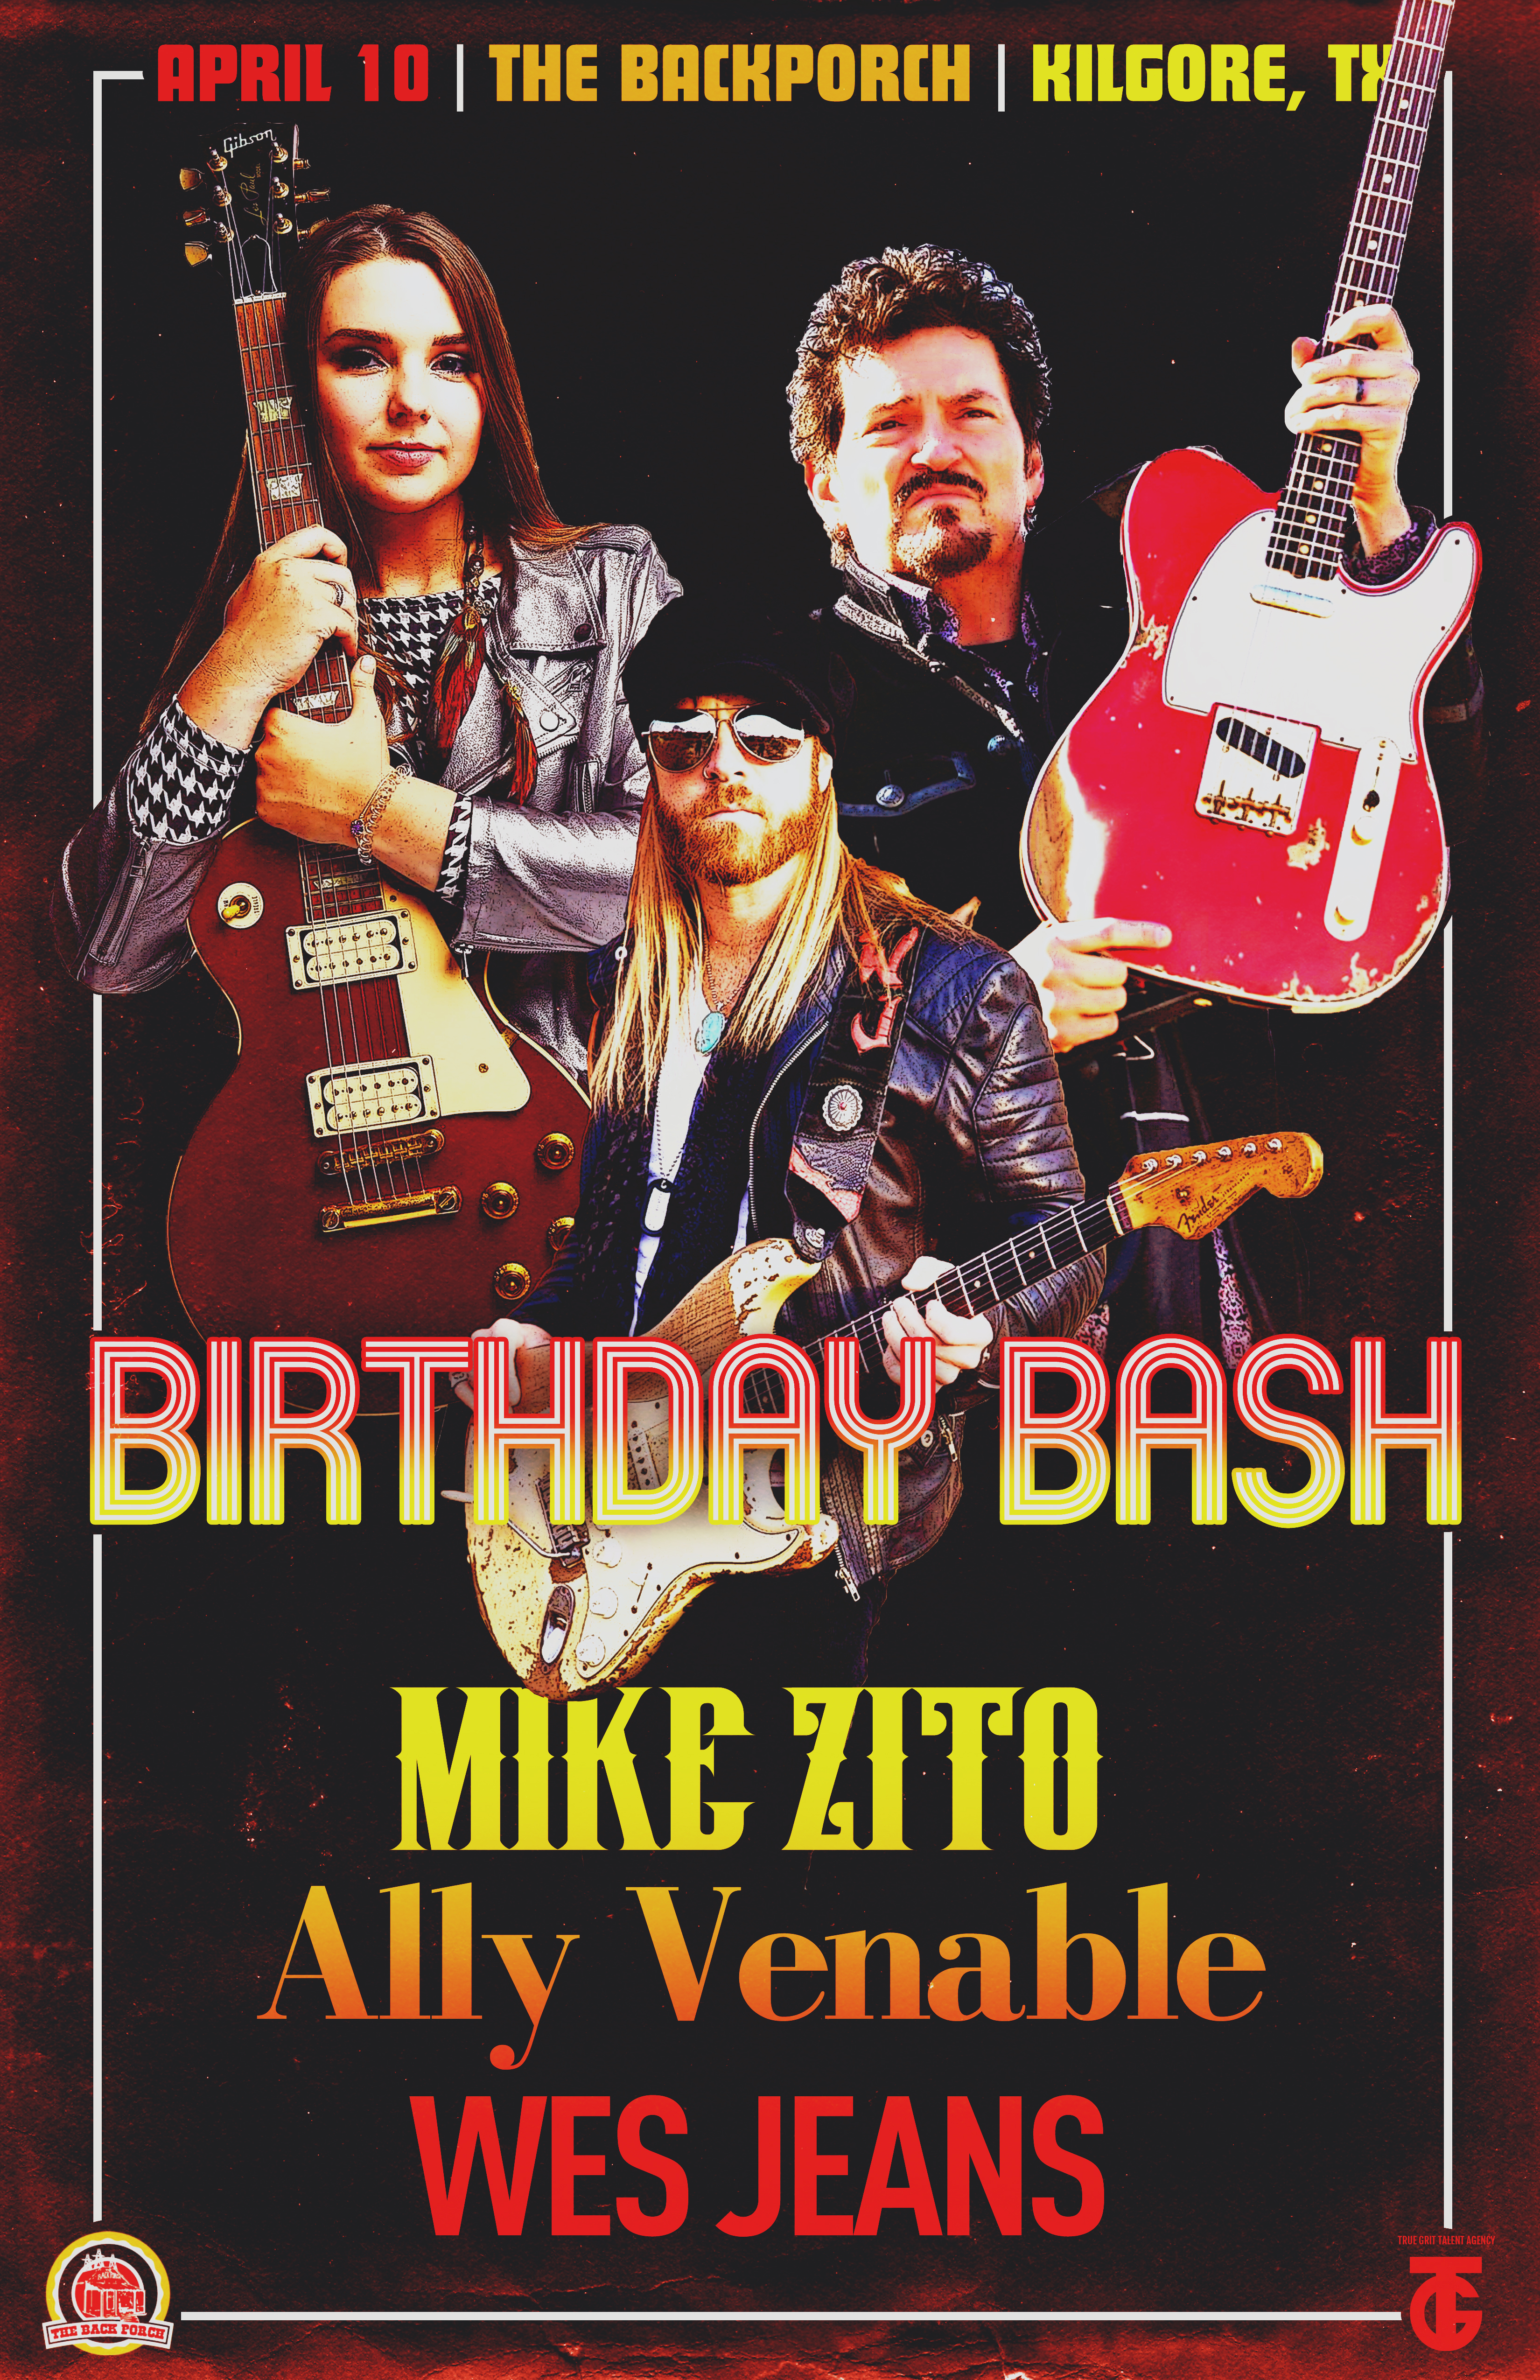 Mike Zito, Ally Venable, & Special Guest: Wes Jeans - Backporch Birthday Bash Show